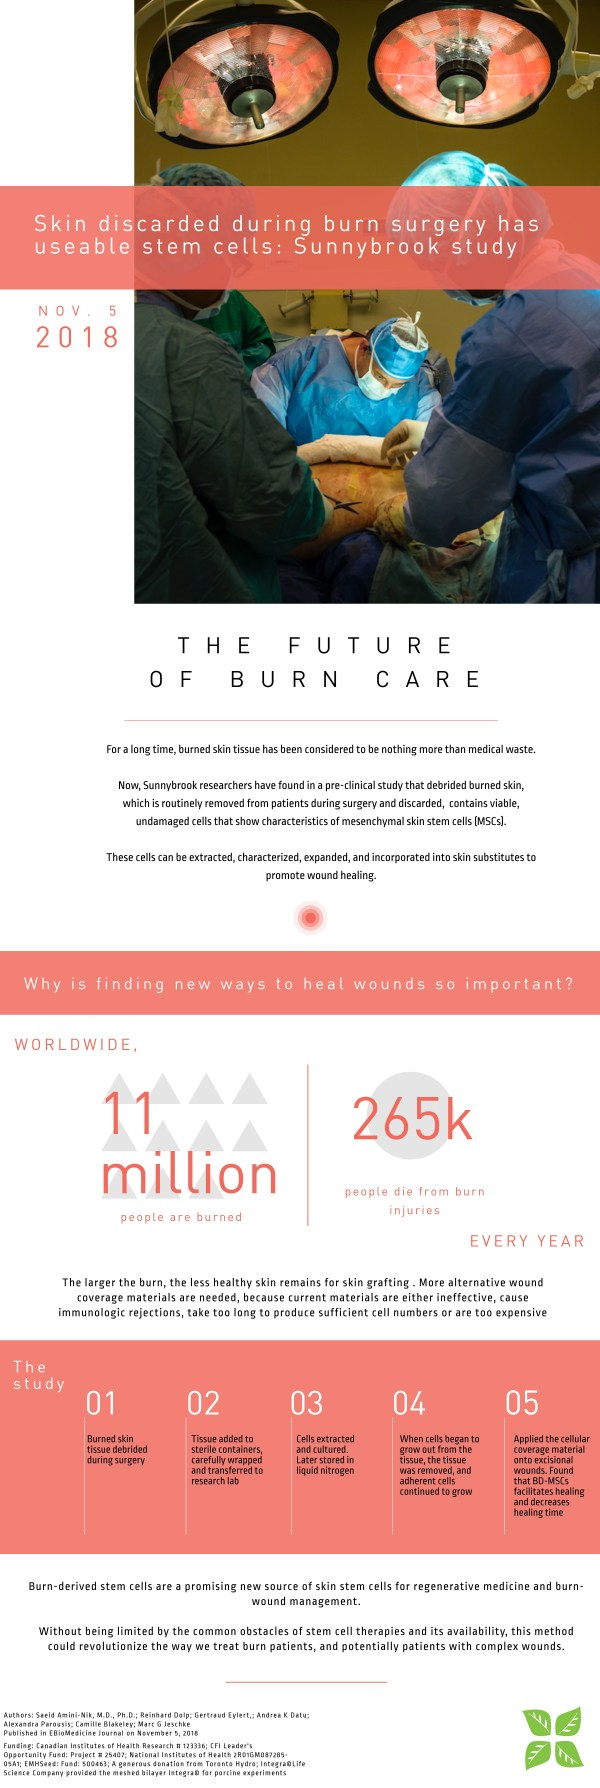 Skin Discarded Burn Surgery Useable Stem Cells